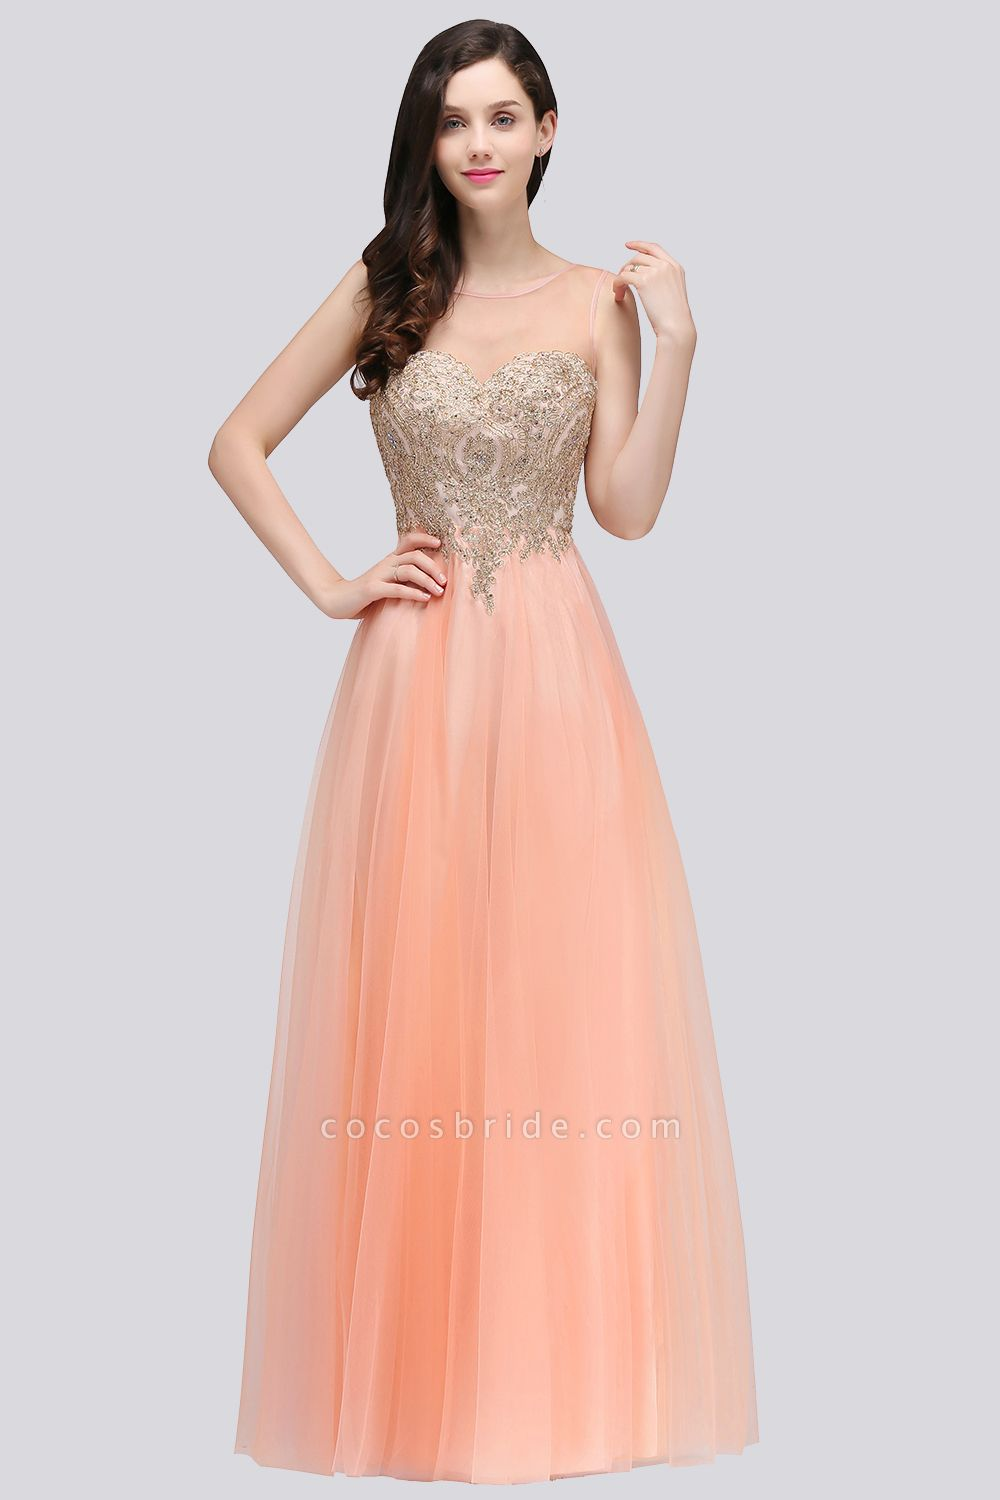 BM0125 A-line Open Back Sleeveless Appliques Tulle Bridesmaid Dresses